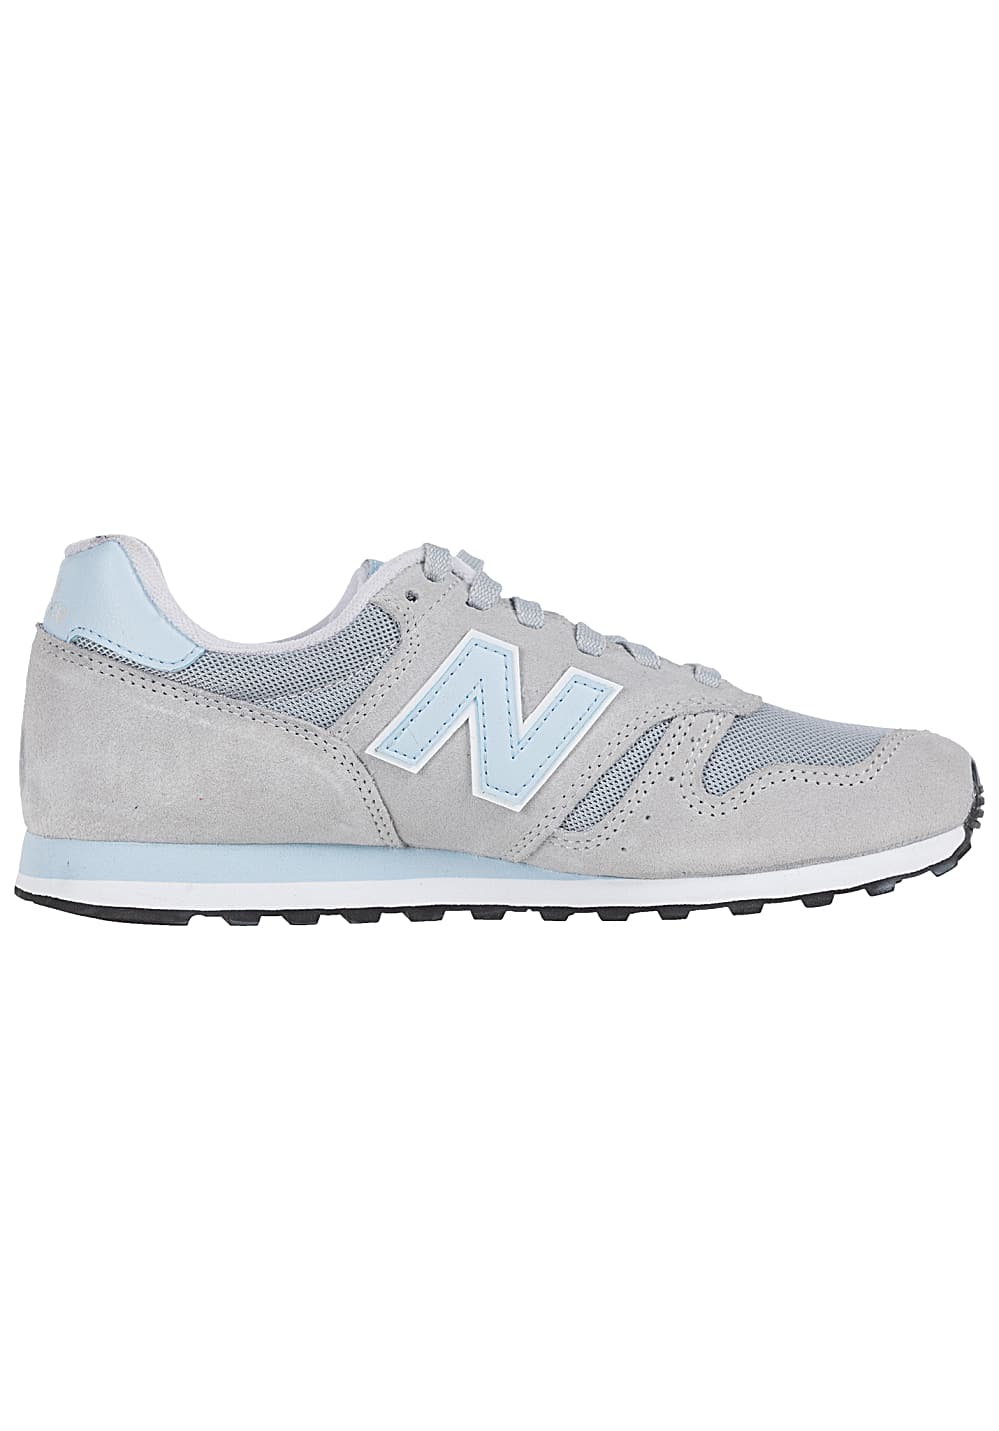 NEW BALANCE WL373 B - Sneakers for Women - Grey